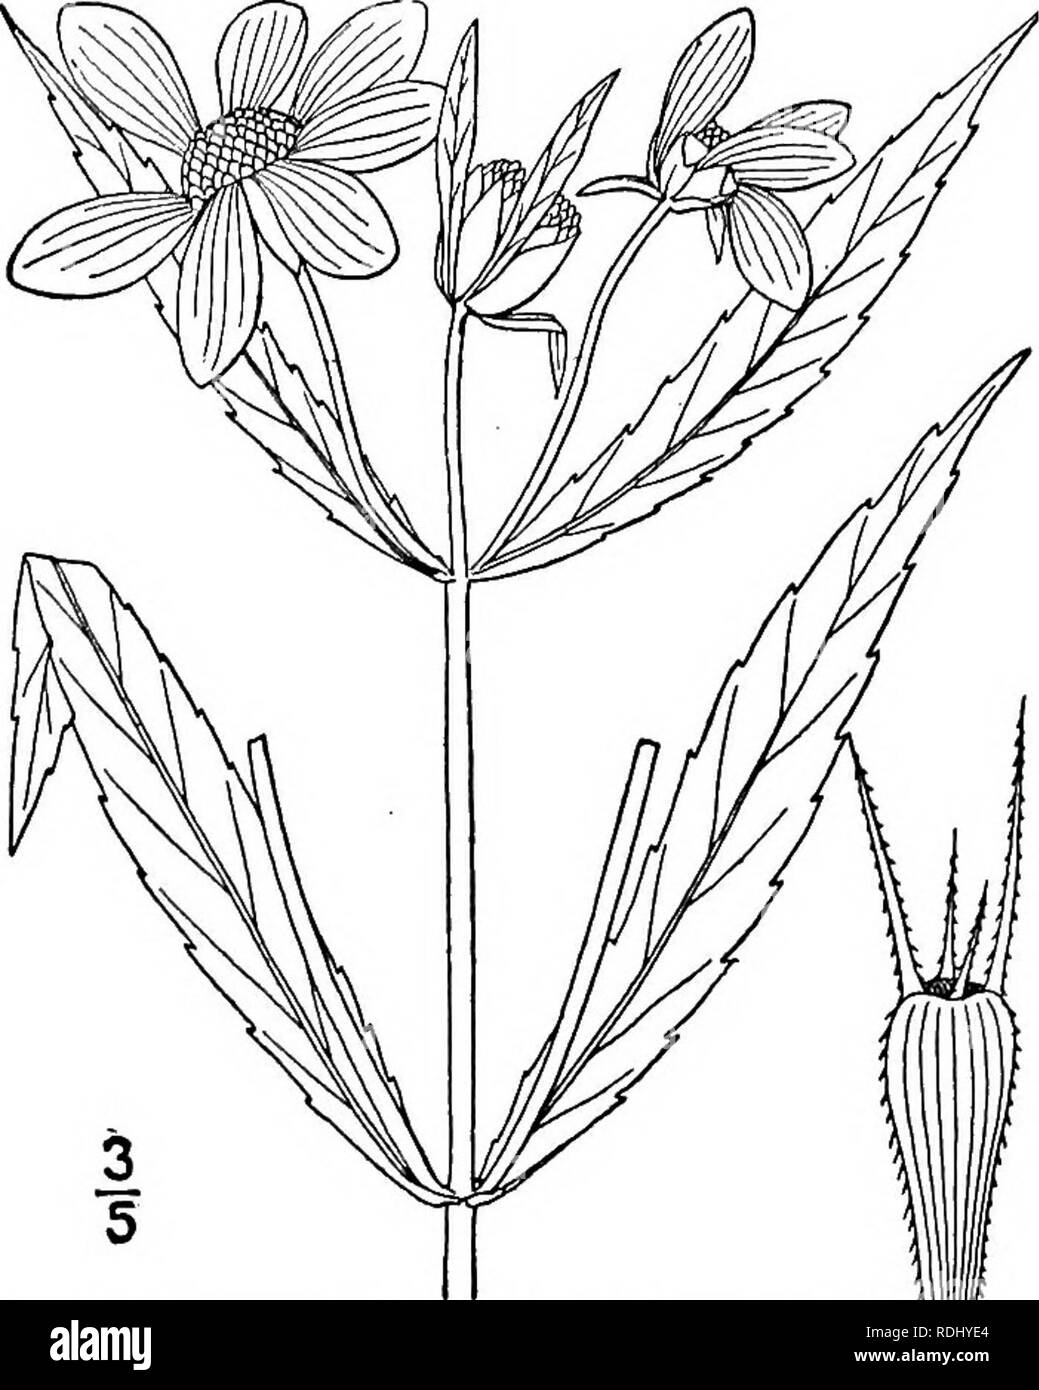 . An illustrated flora of the northern United States, Canada and the British possessions, from Newfoundland to the parallel of the southern boundary of Virginia, and from the Atlantic Ocean westward to the 102d meridian. Botany; Botany. Genus 71. THISTLE FAMILY. 495 1. Bidens laevis (L.) B.S.P. Larger or Smooth Bur-Marigold. Brook Sun- flower. Fig. 4505. Helianthus laevis L. Sp. PI. 906. 1753. Bidens chrysanthemoides Michx. Fl. Bor. Am. 2 : 136. 1803. Bidens laevis B.S.P. Prel. Cat. N. Y. 29. 1888. Bidens lugens Greene, Pittonia 4: 254. 1901. Annual; glabrous throughout; stems branch- ed, erec - Stock Image